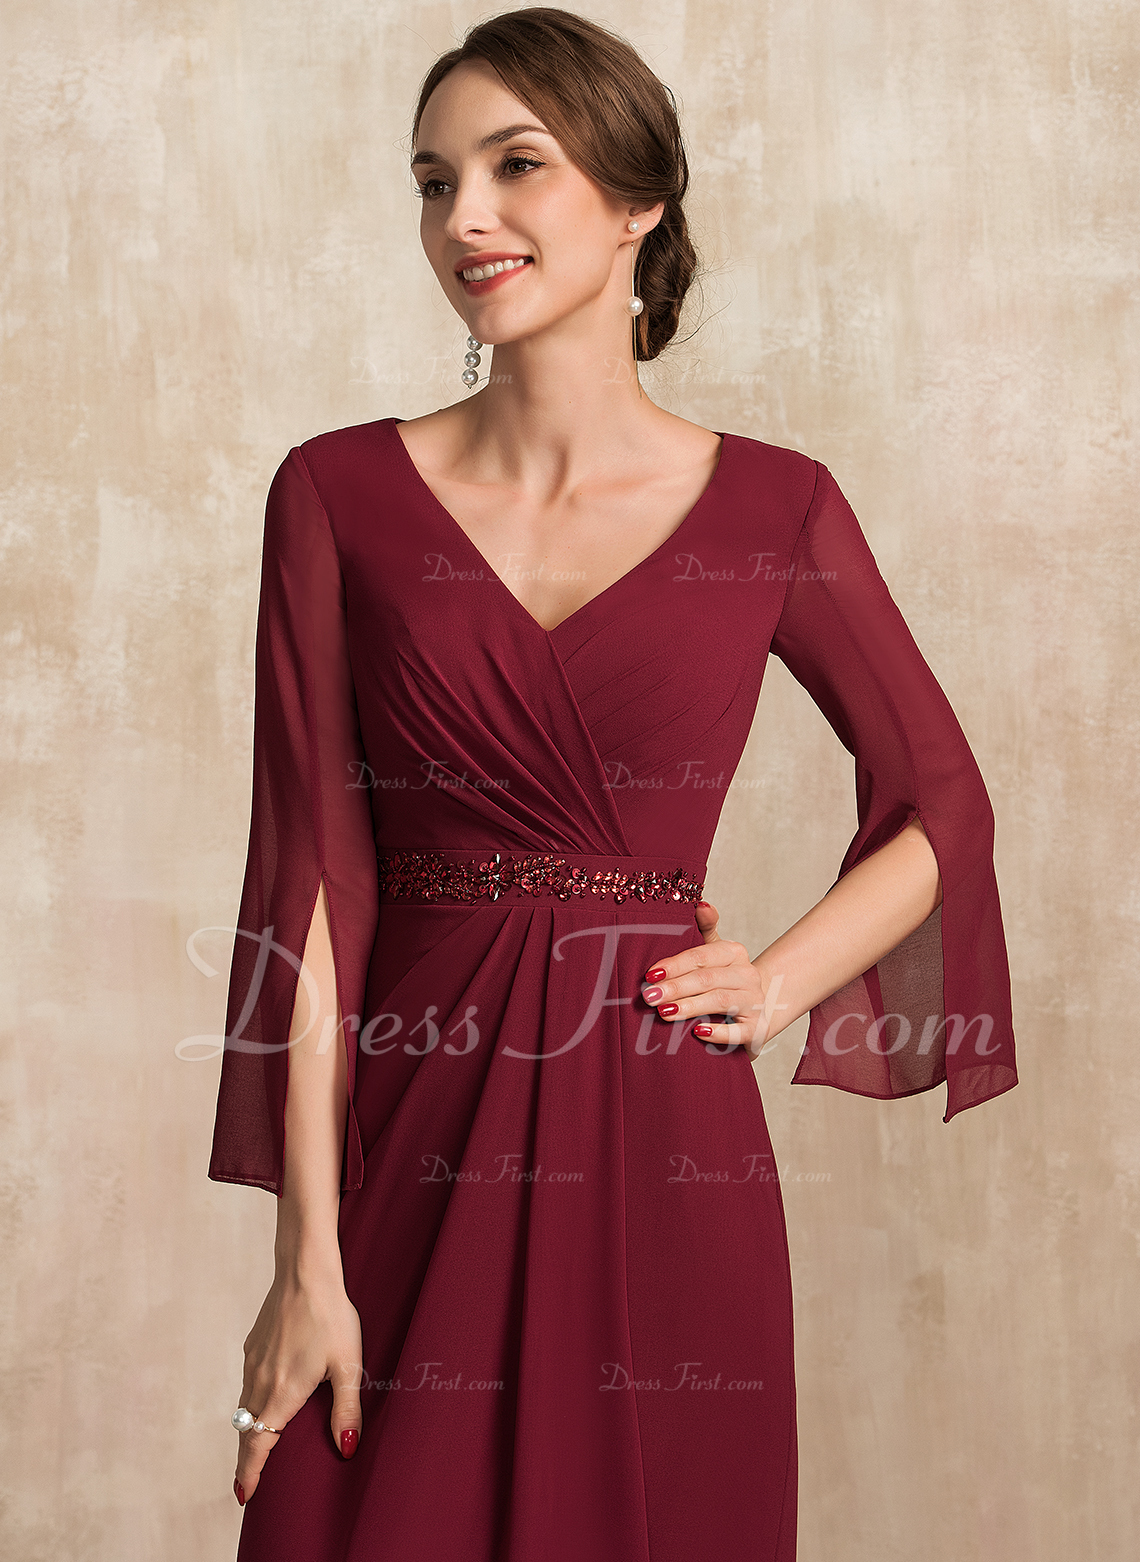 Sheath/Column V-neck Floor-Length Chiffon Mother of the Bride Dress With Ruffle Beading Sequins